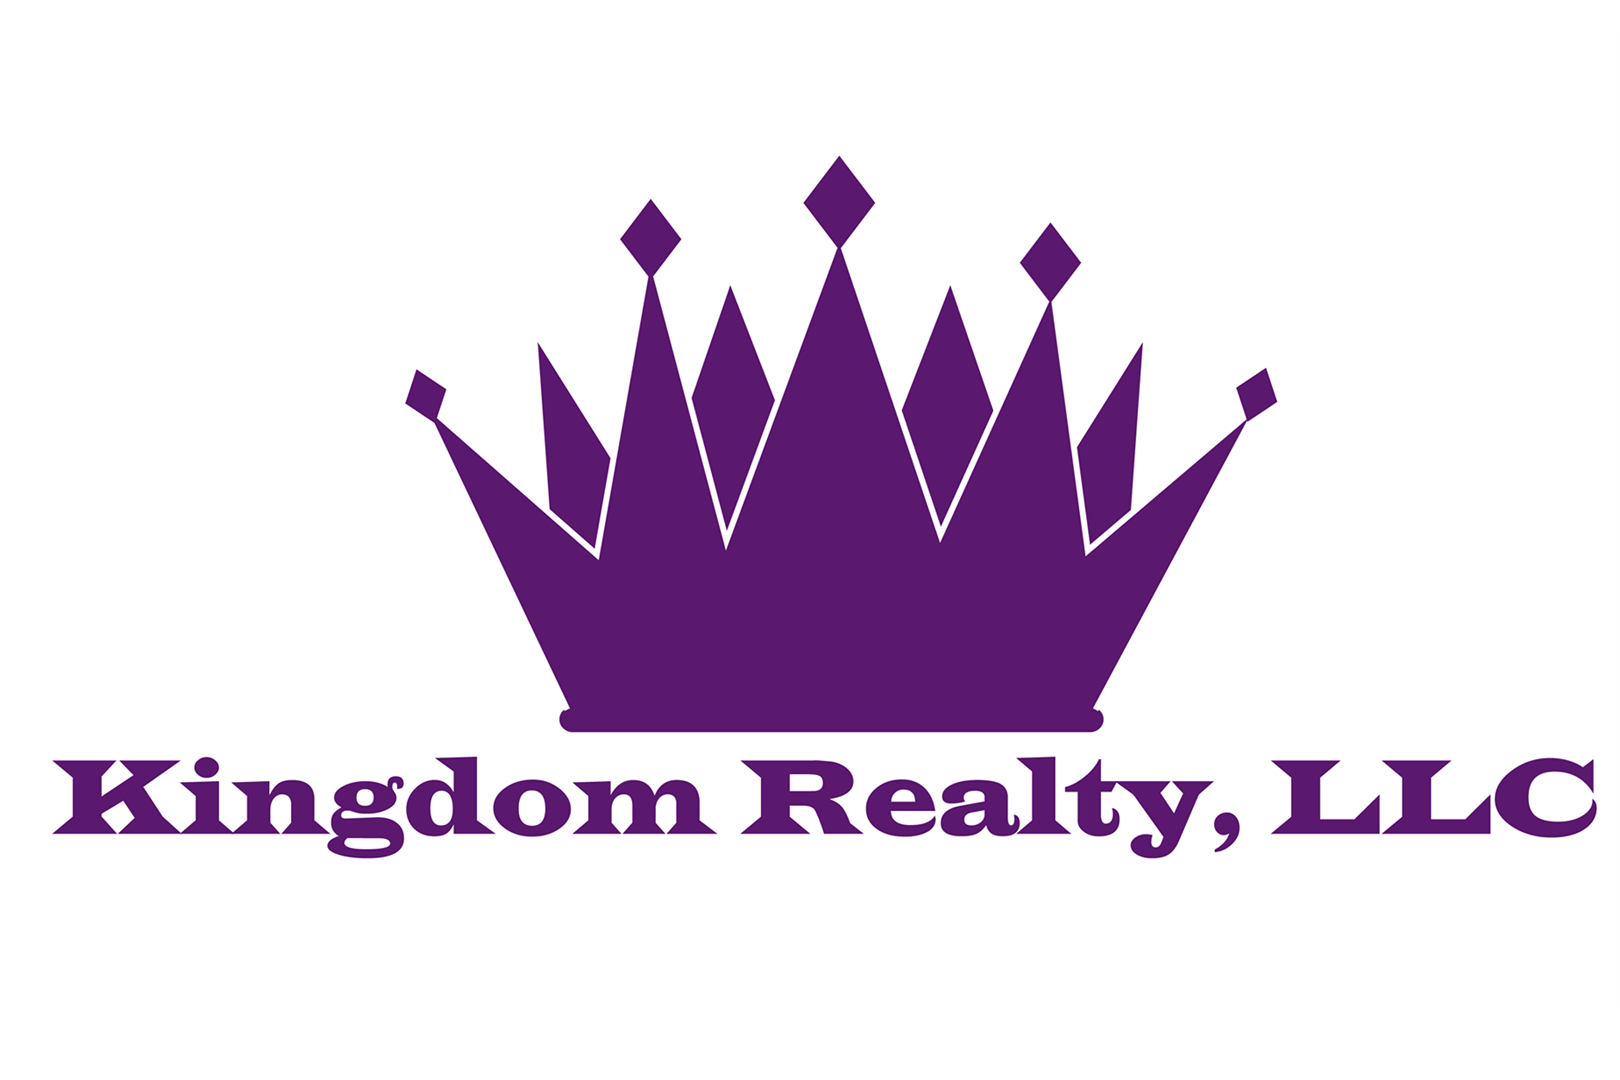 Kingdom Realty, LLC